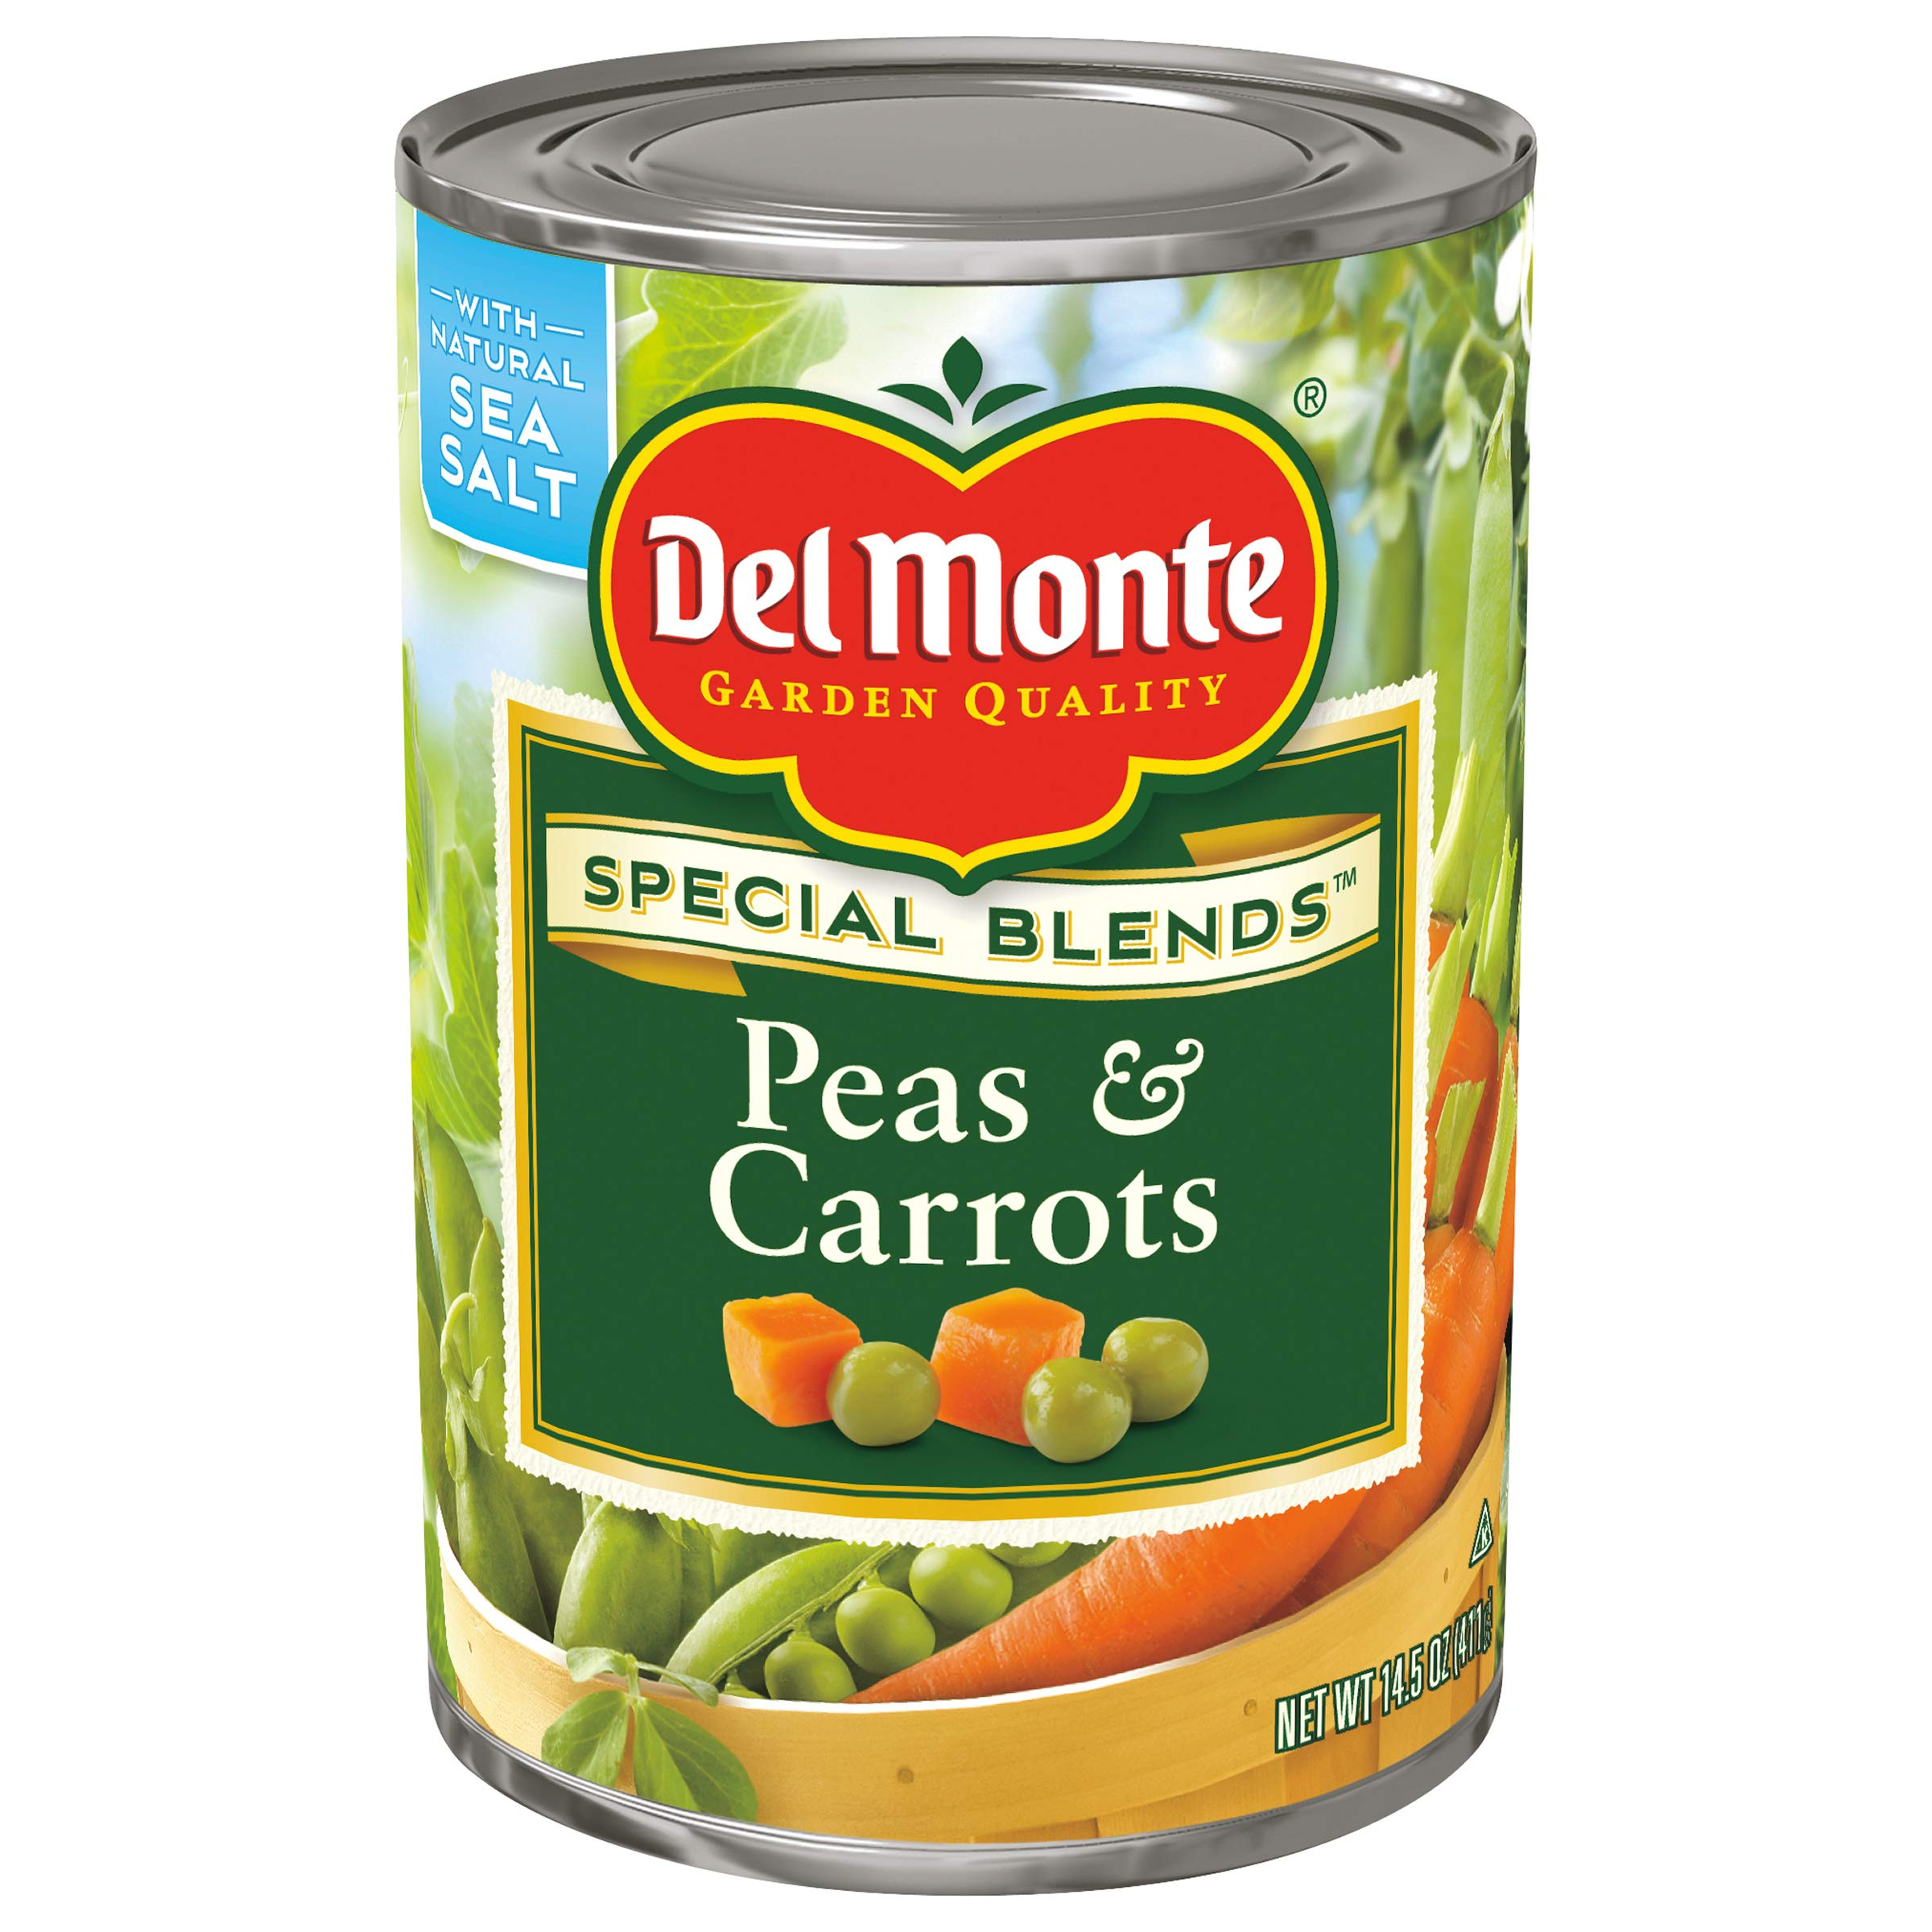 Del Monte Canned Harvest Select Peas & Carrots, 14.5-Ounce (Pack of 12)